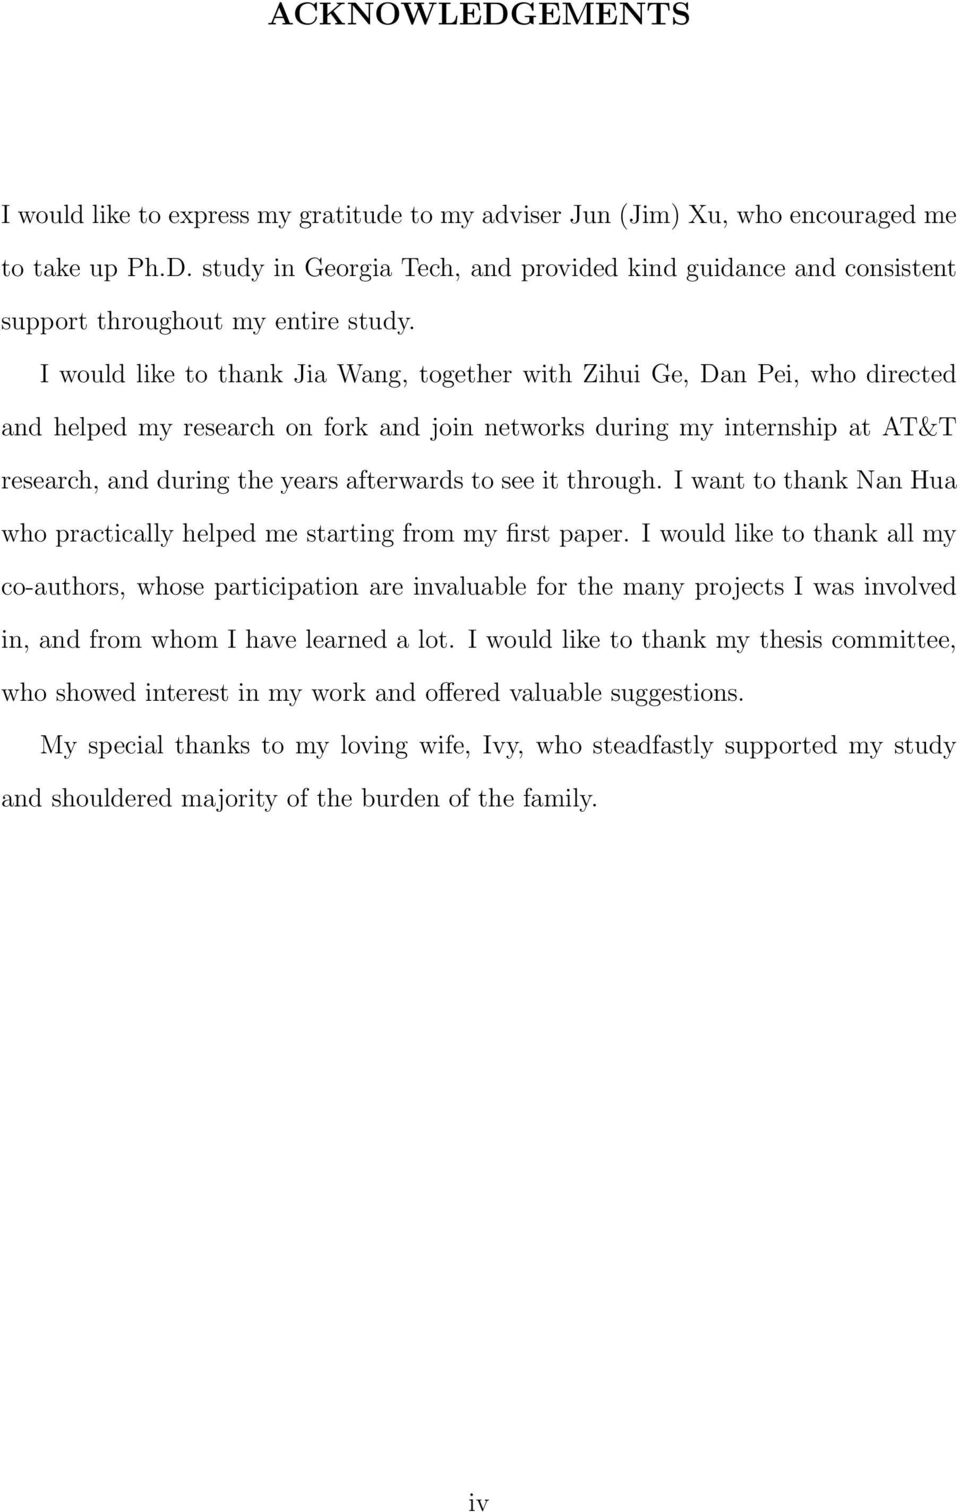 to see it through. I want to thank Nan Hua who practically helped me starting from my first paper.